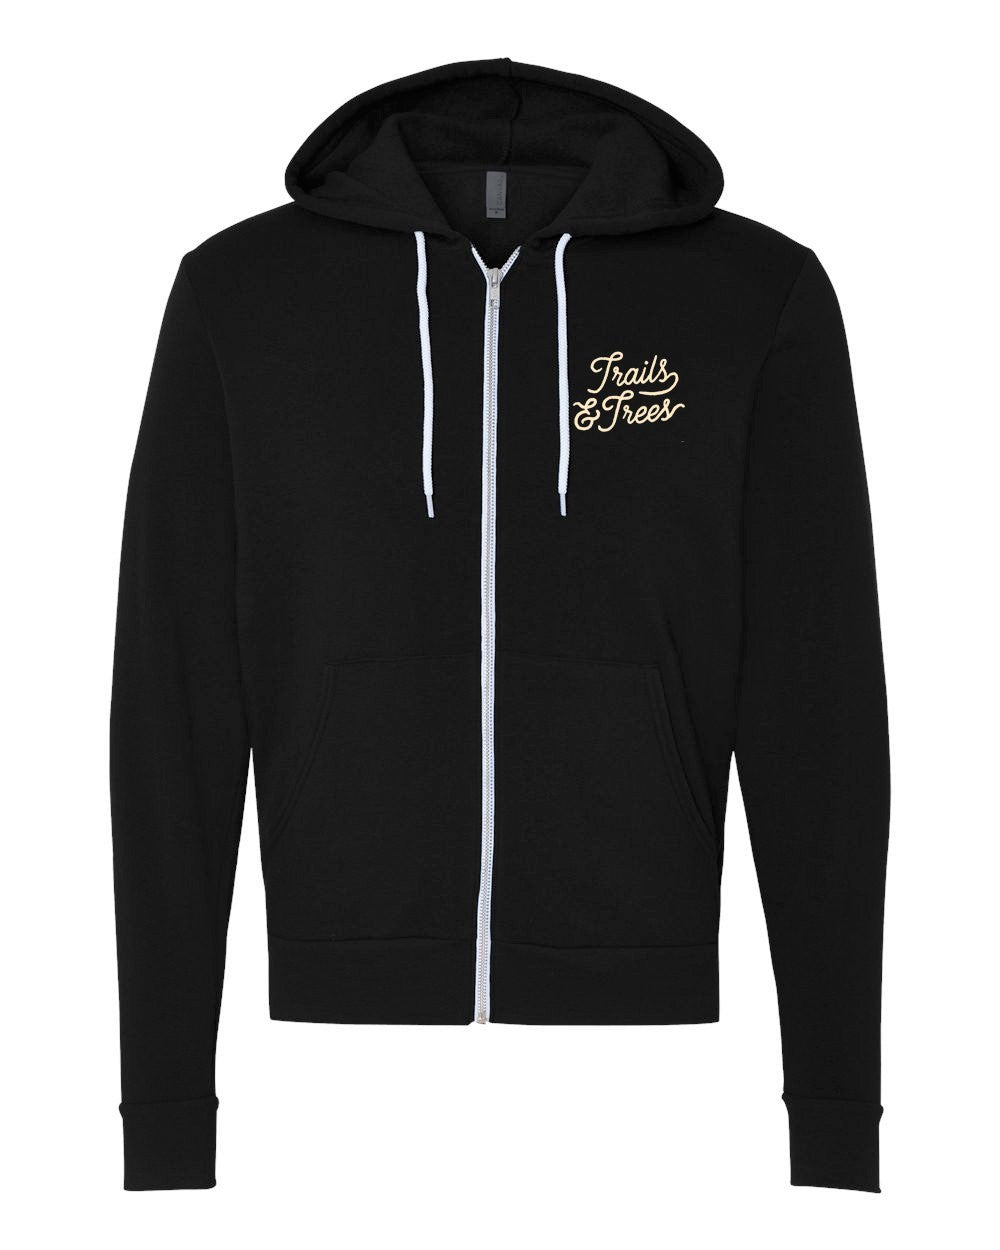 Trails & Trees Zip-Up Hoodie Black